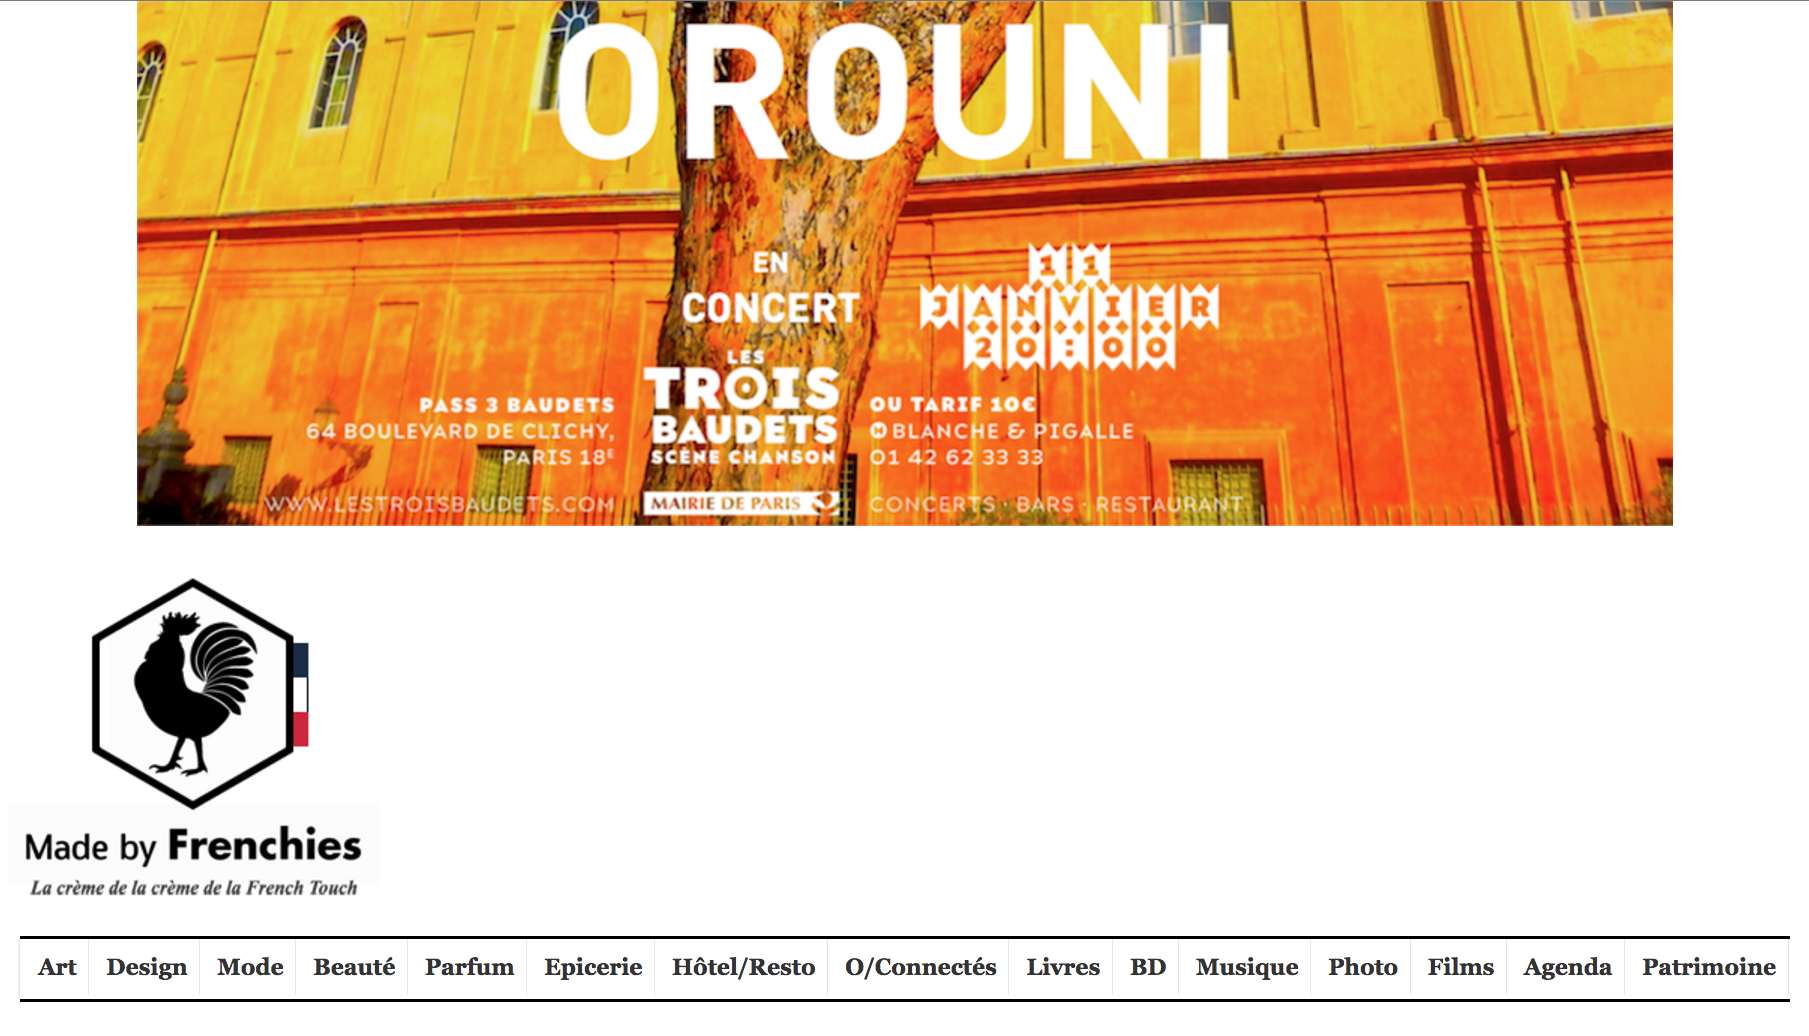 Orouni - Made By Frenchies